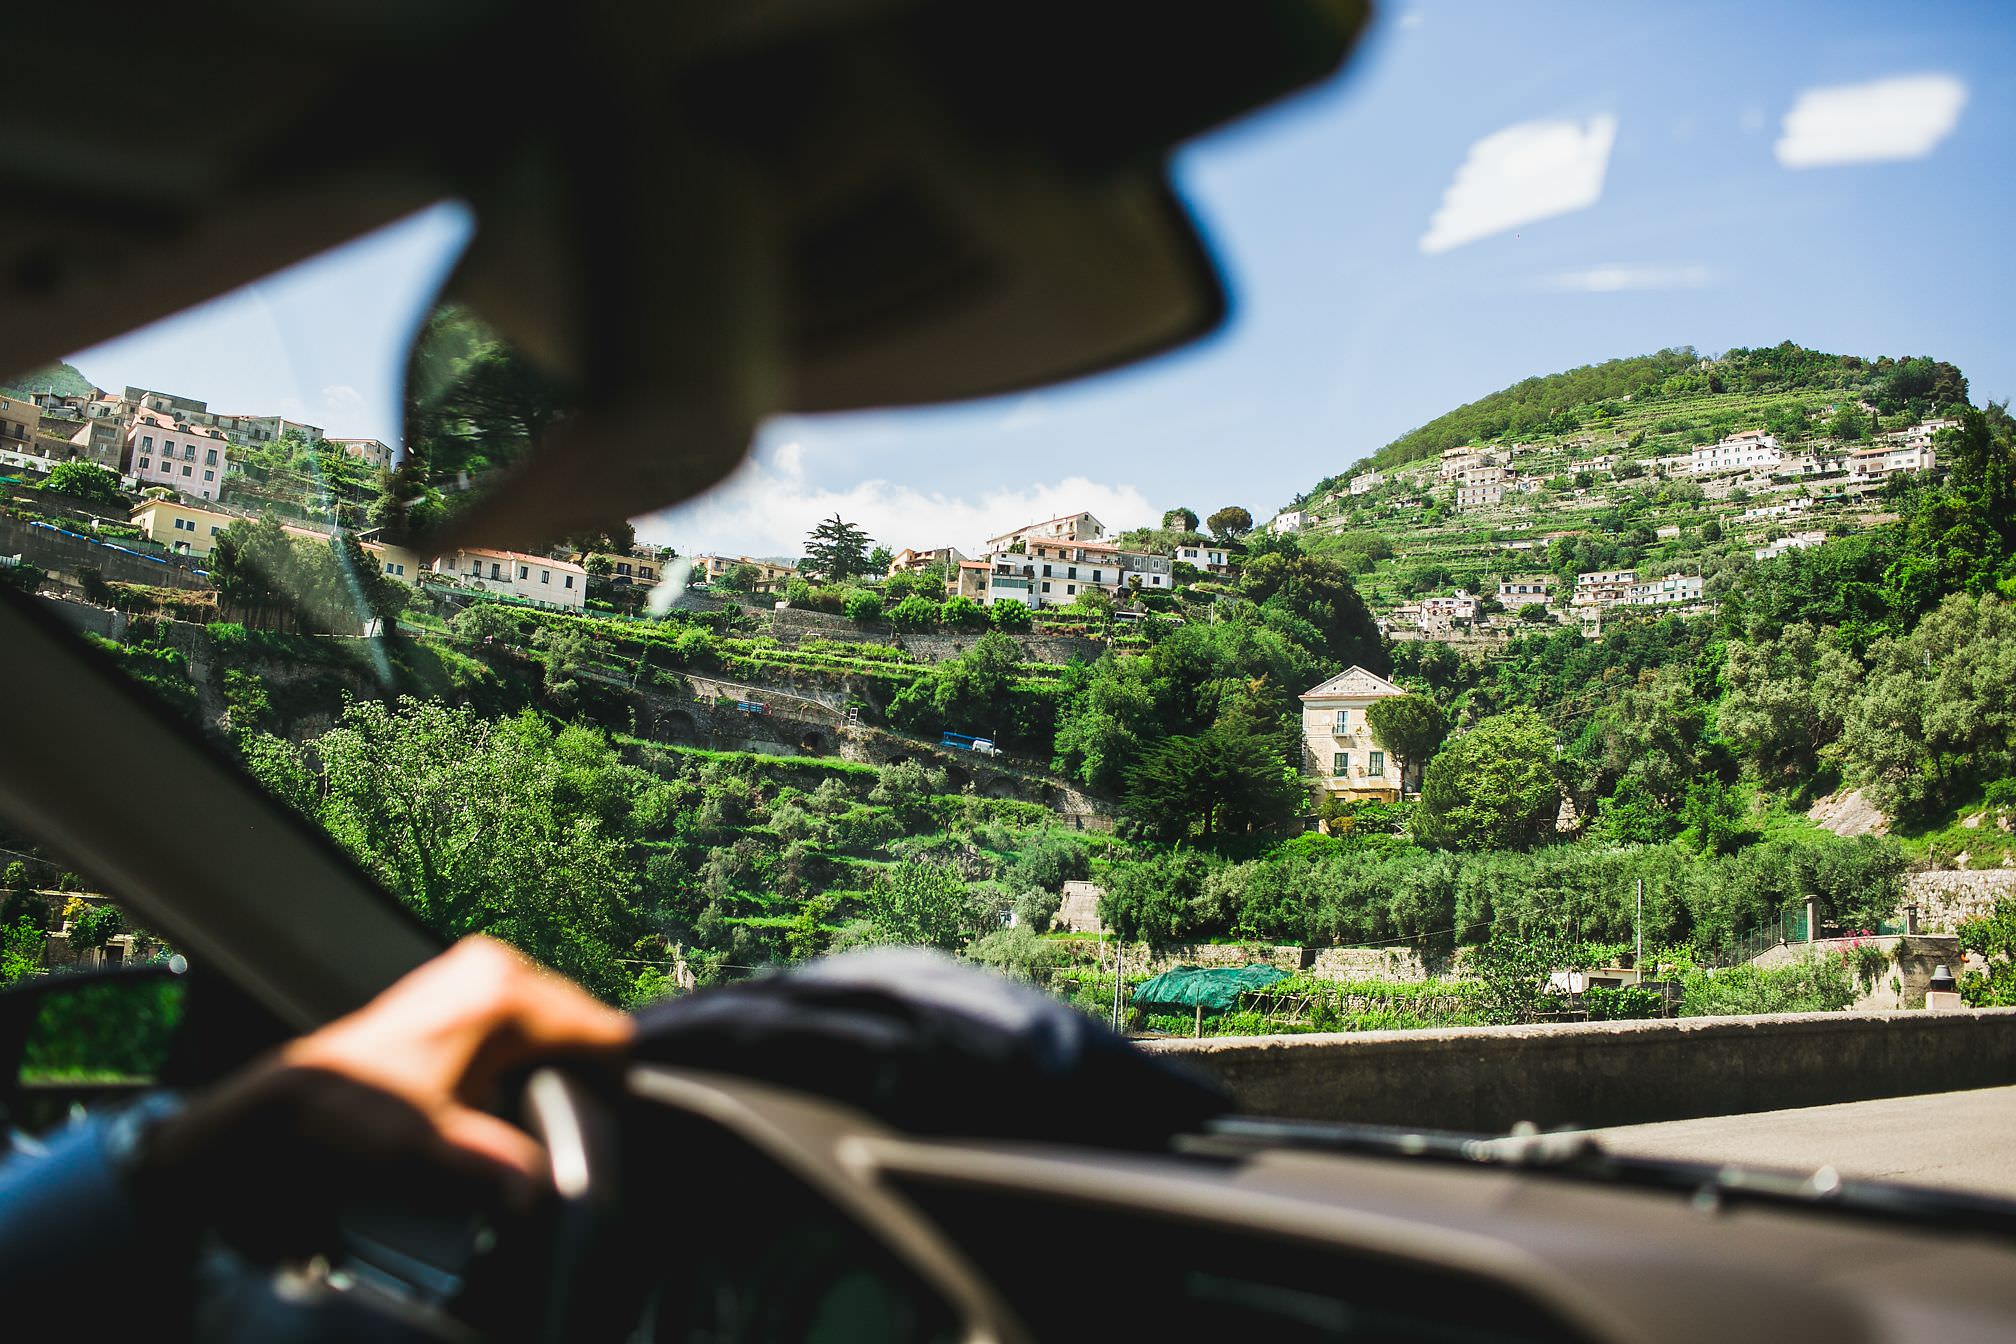 The drive from Amalfi to Ravello